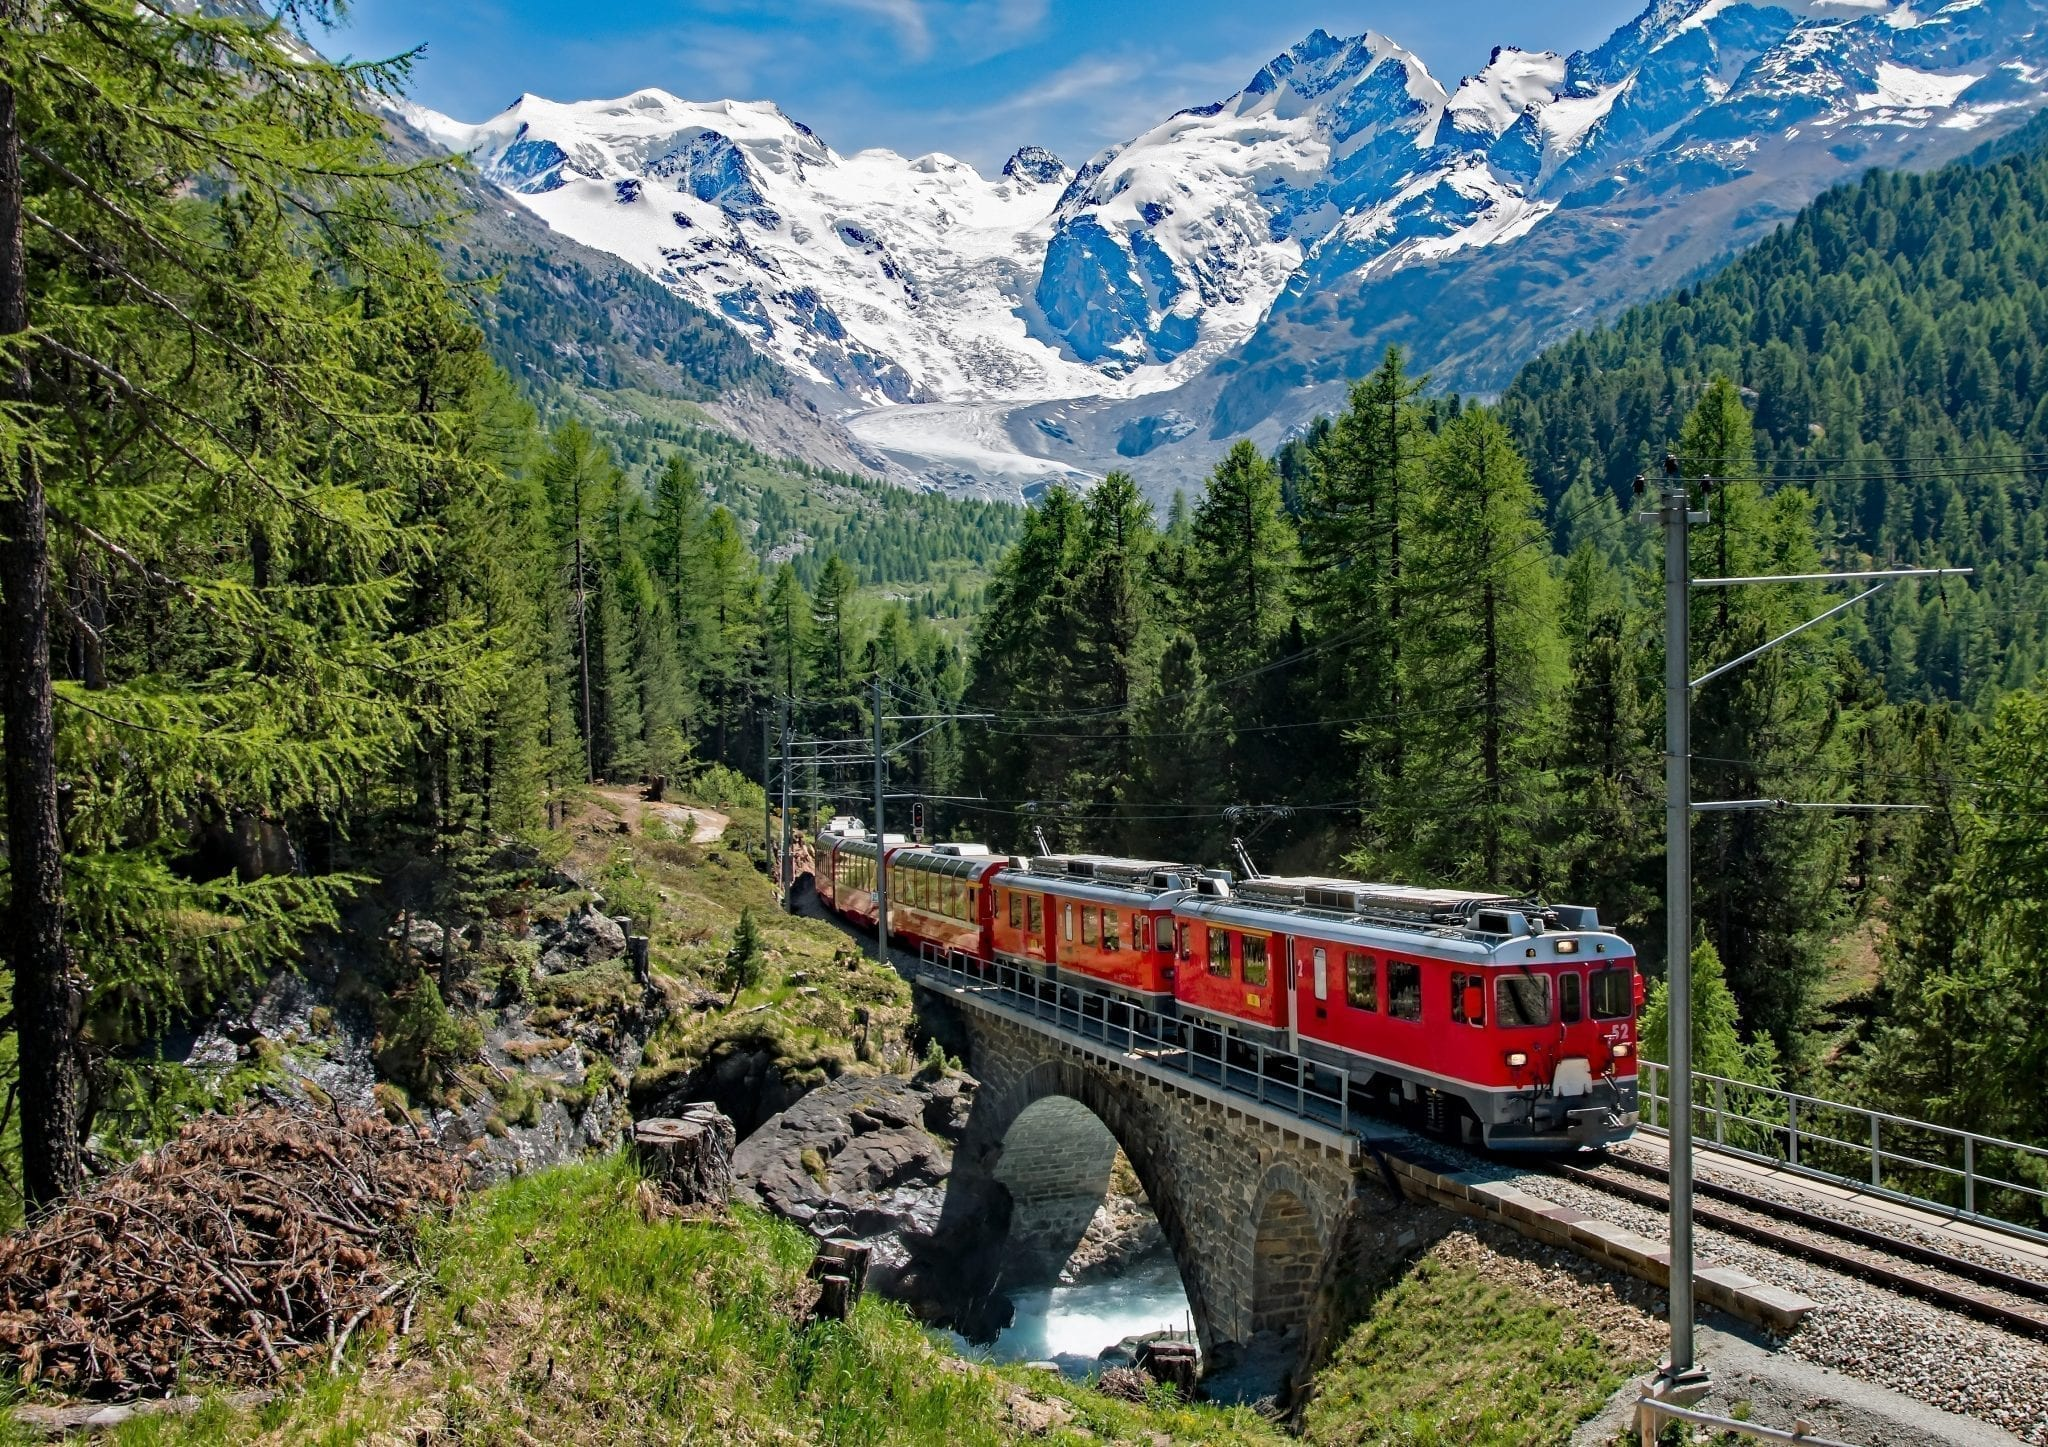 Red train moving through Switzerland with mountains visible in the background--views like this are one of the best reasons to travel Europe by train